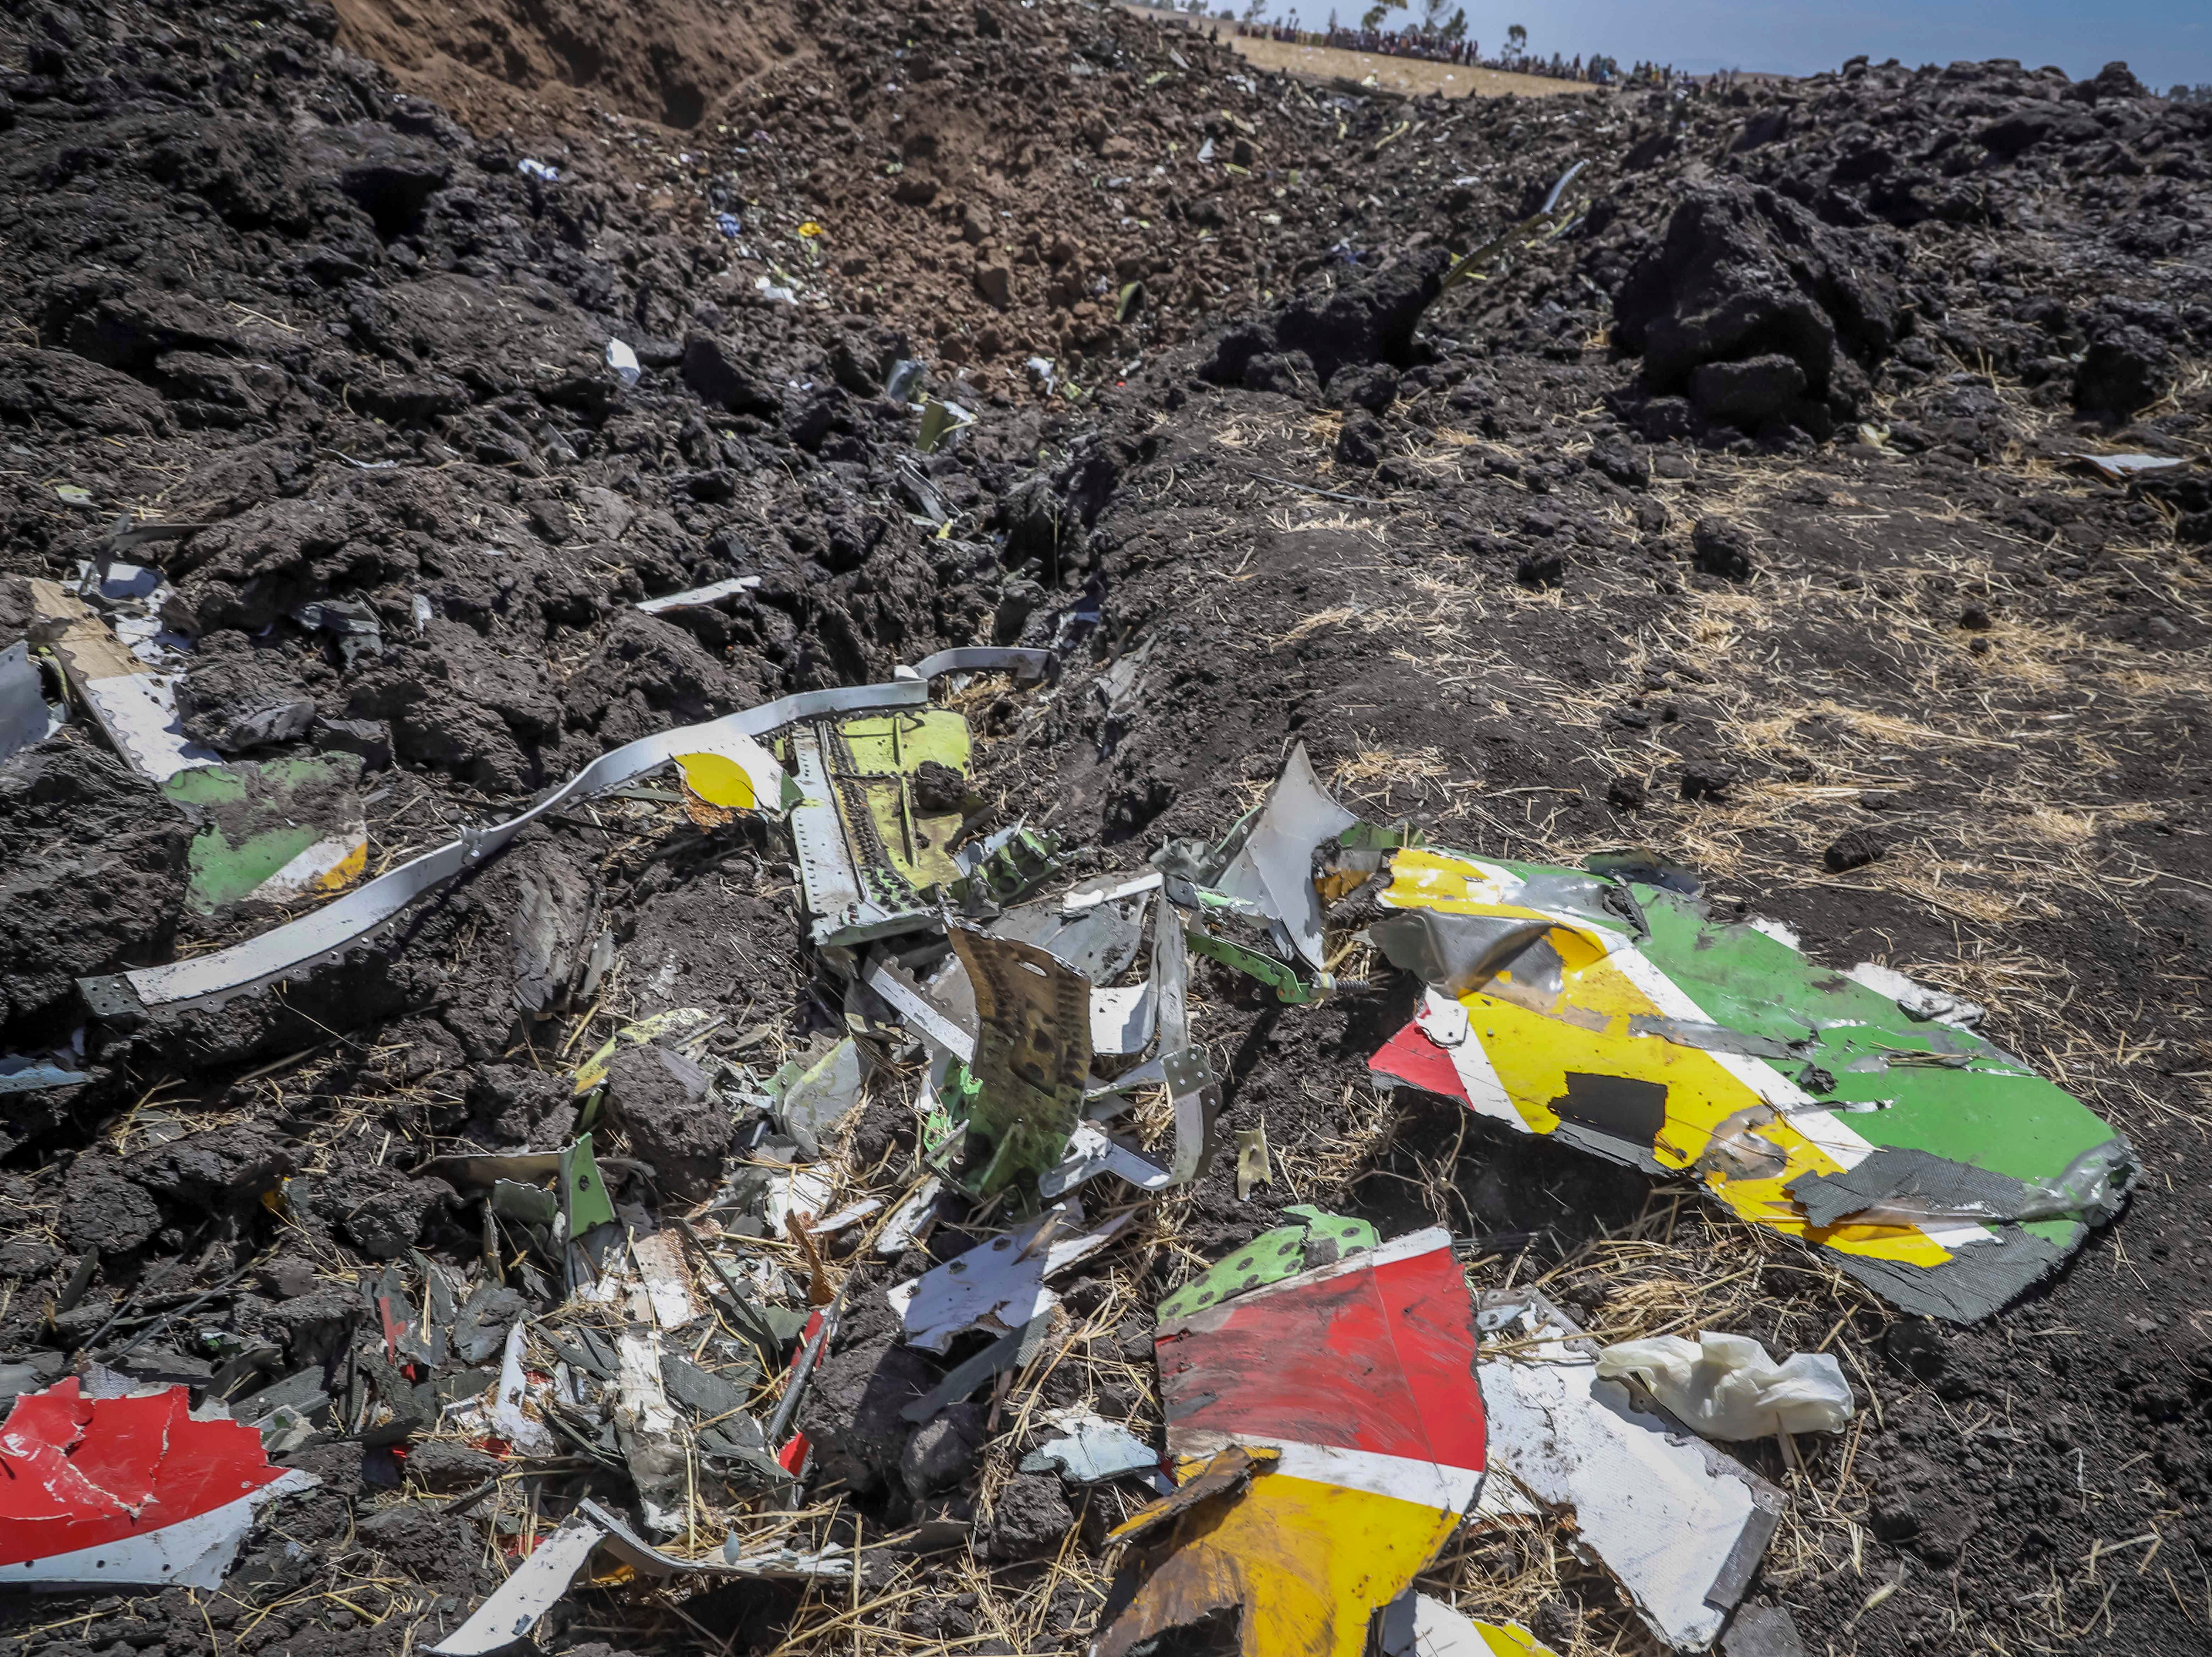 Debris at the crash site of Ethiopian Airlines Flight 302 that crashed shortly after takeoff.